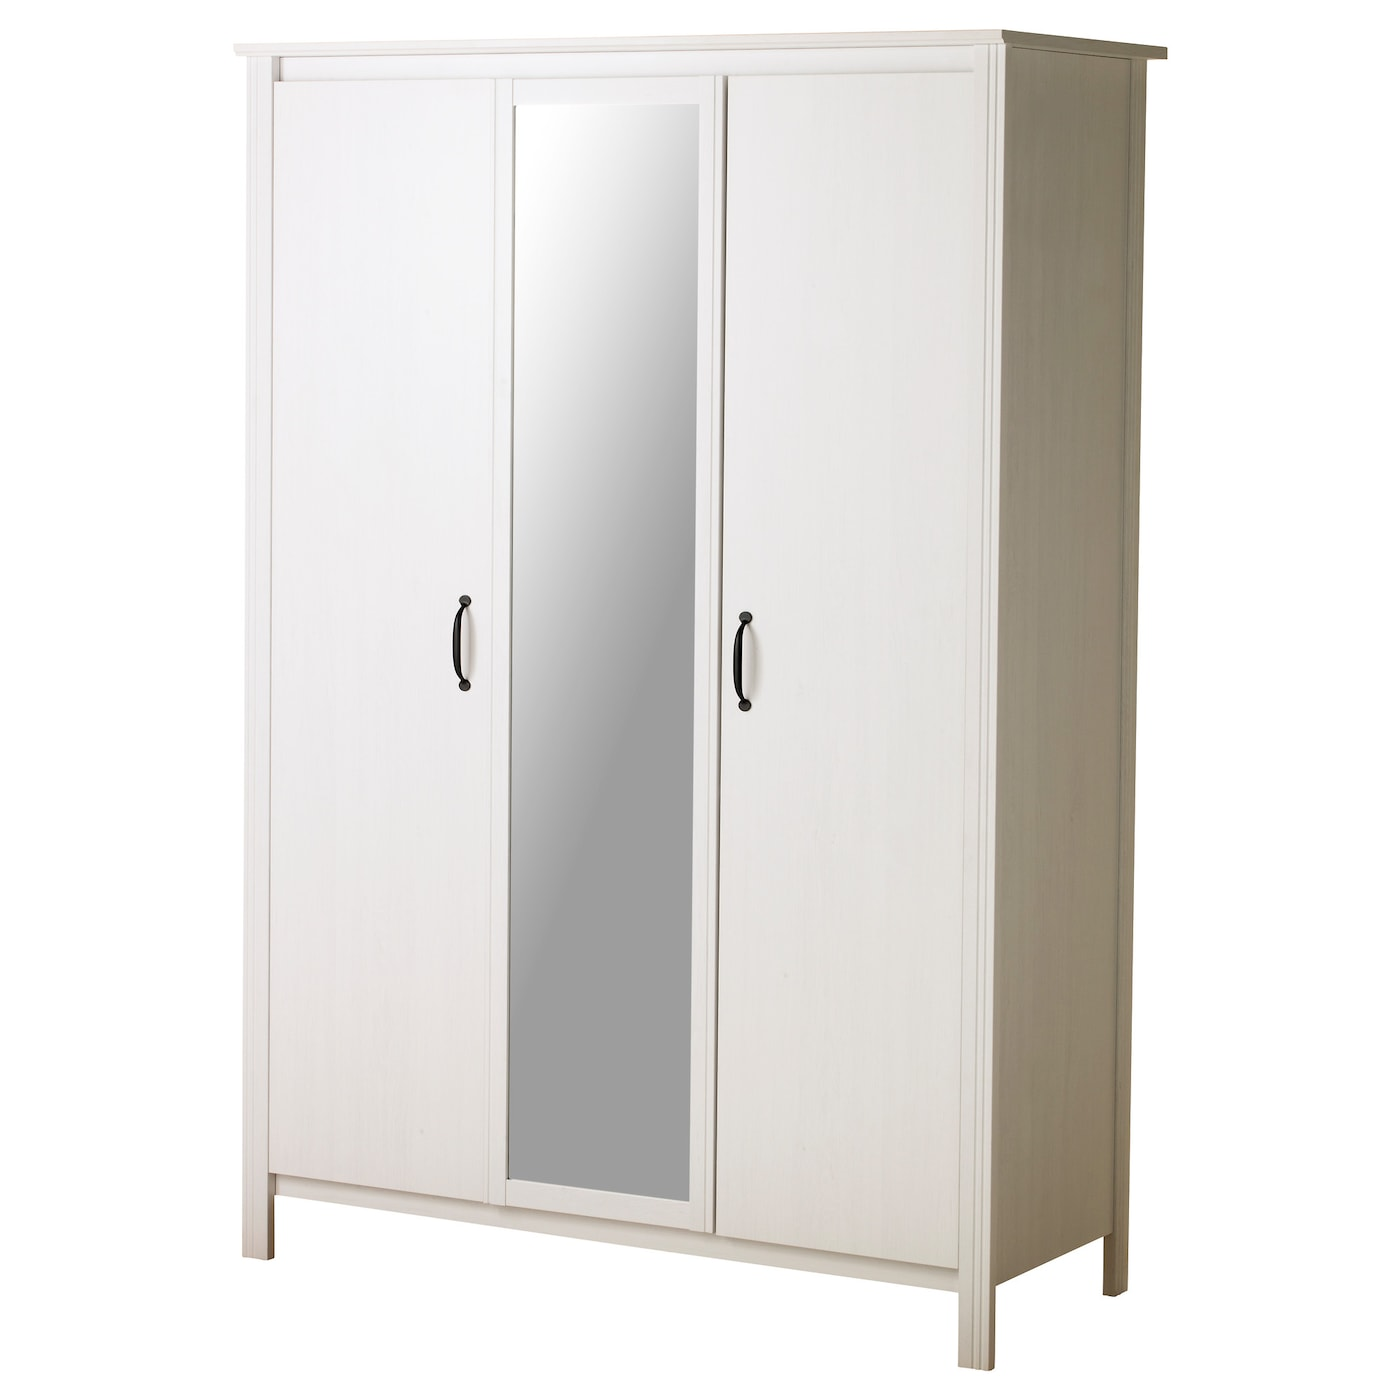 BRUSALI Wardrobe With Doors White X Cm IKEA - Ikea wardrobe